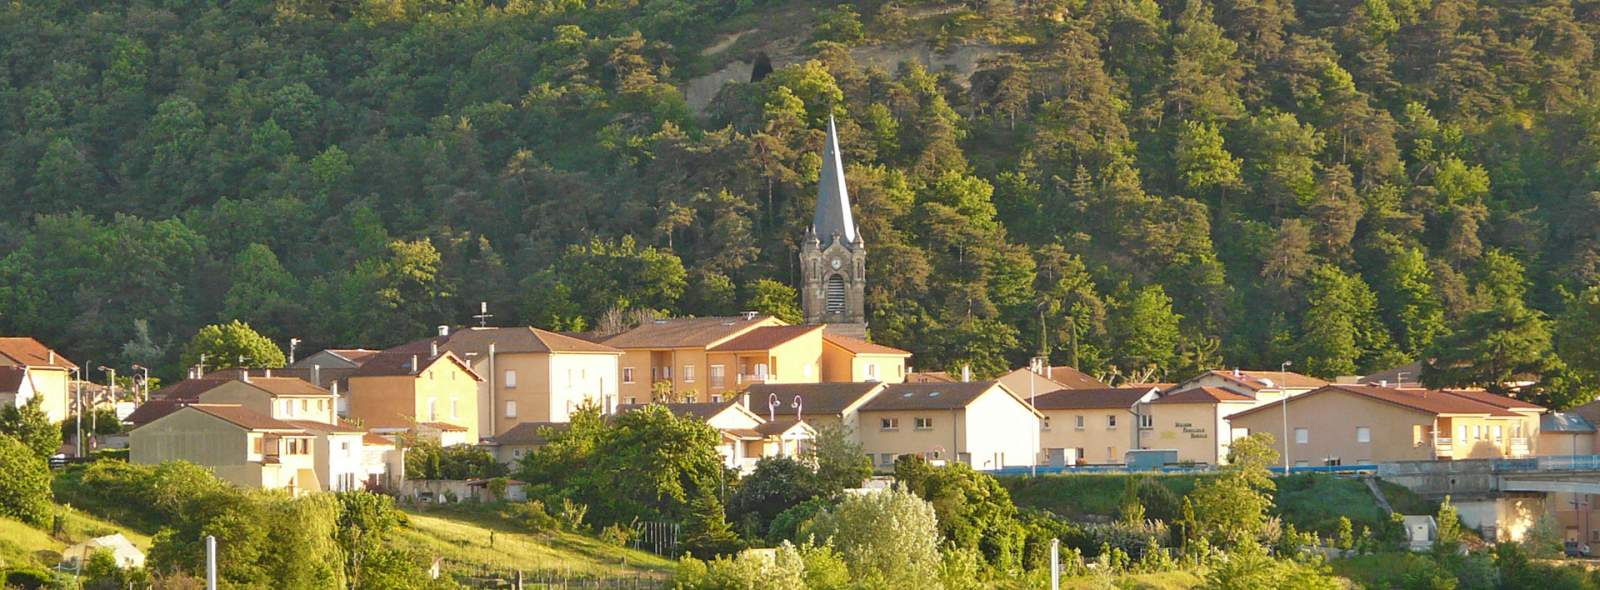 chateauneuf isere